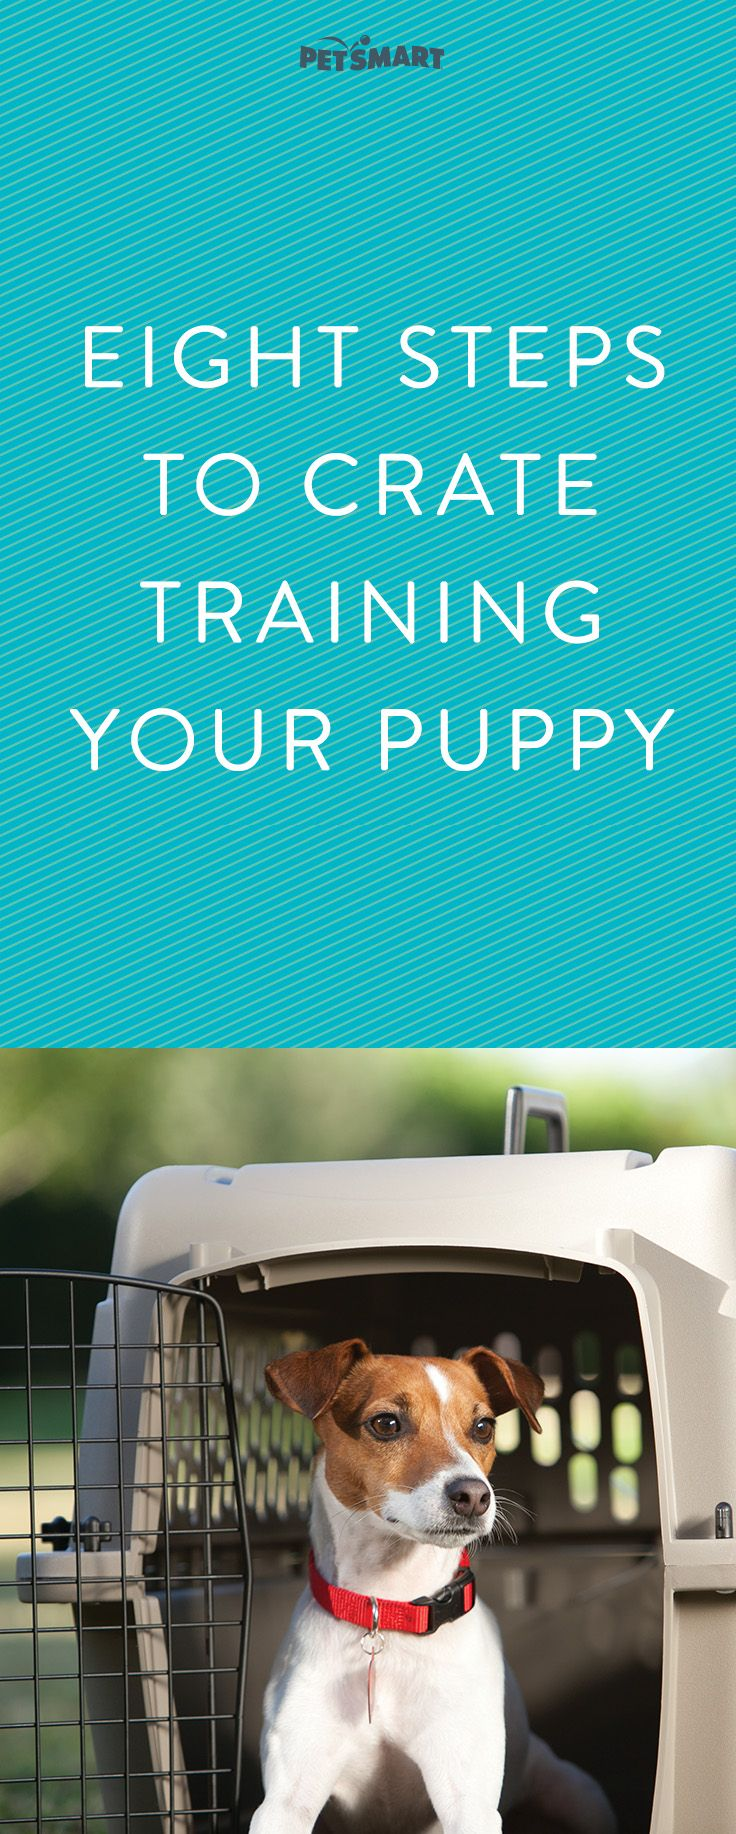 Ready to crate train puppy? Read this first.